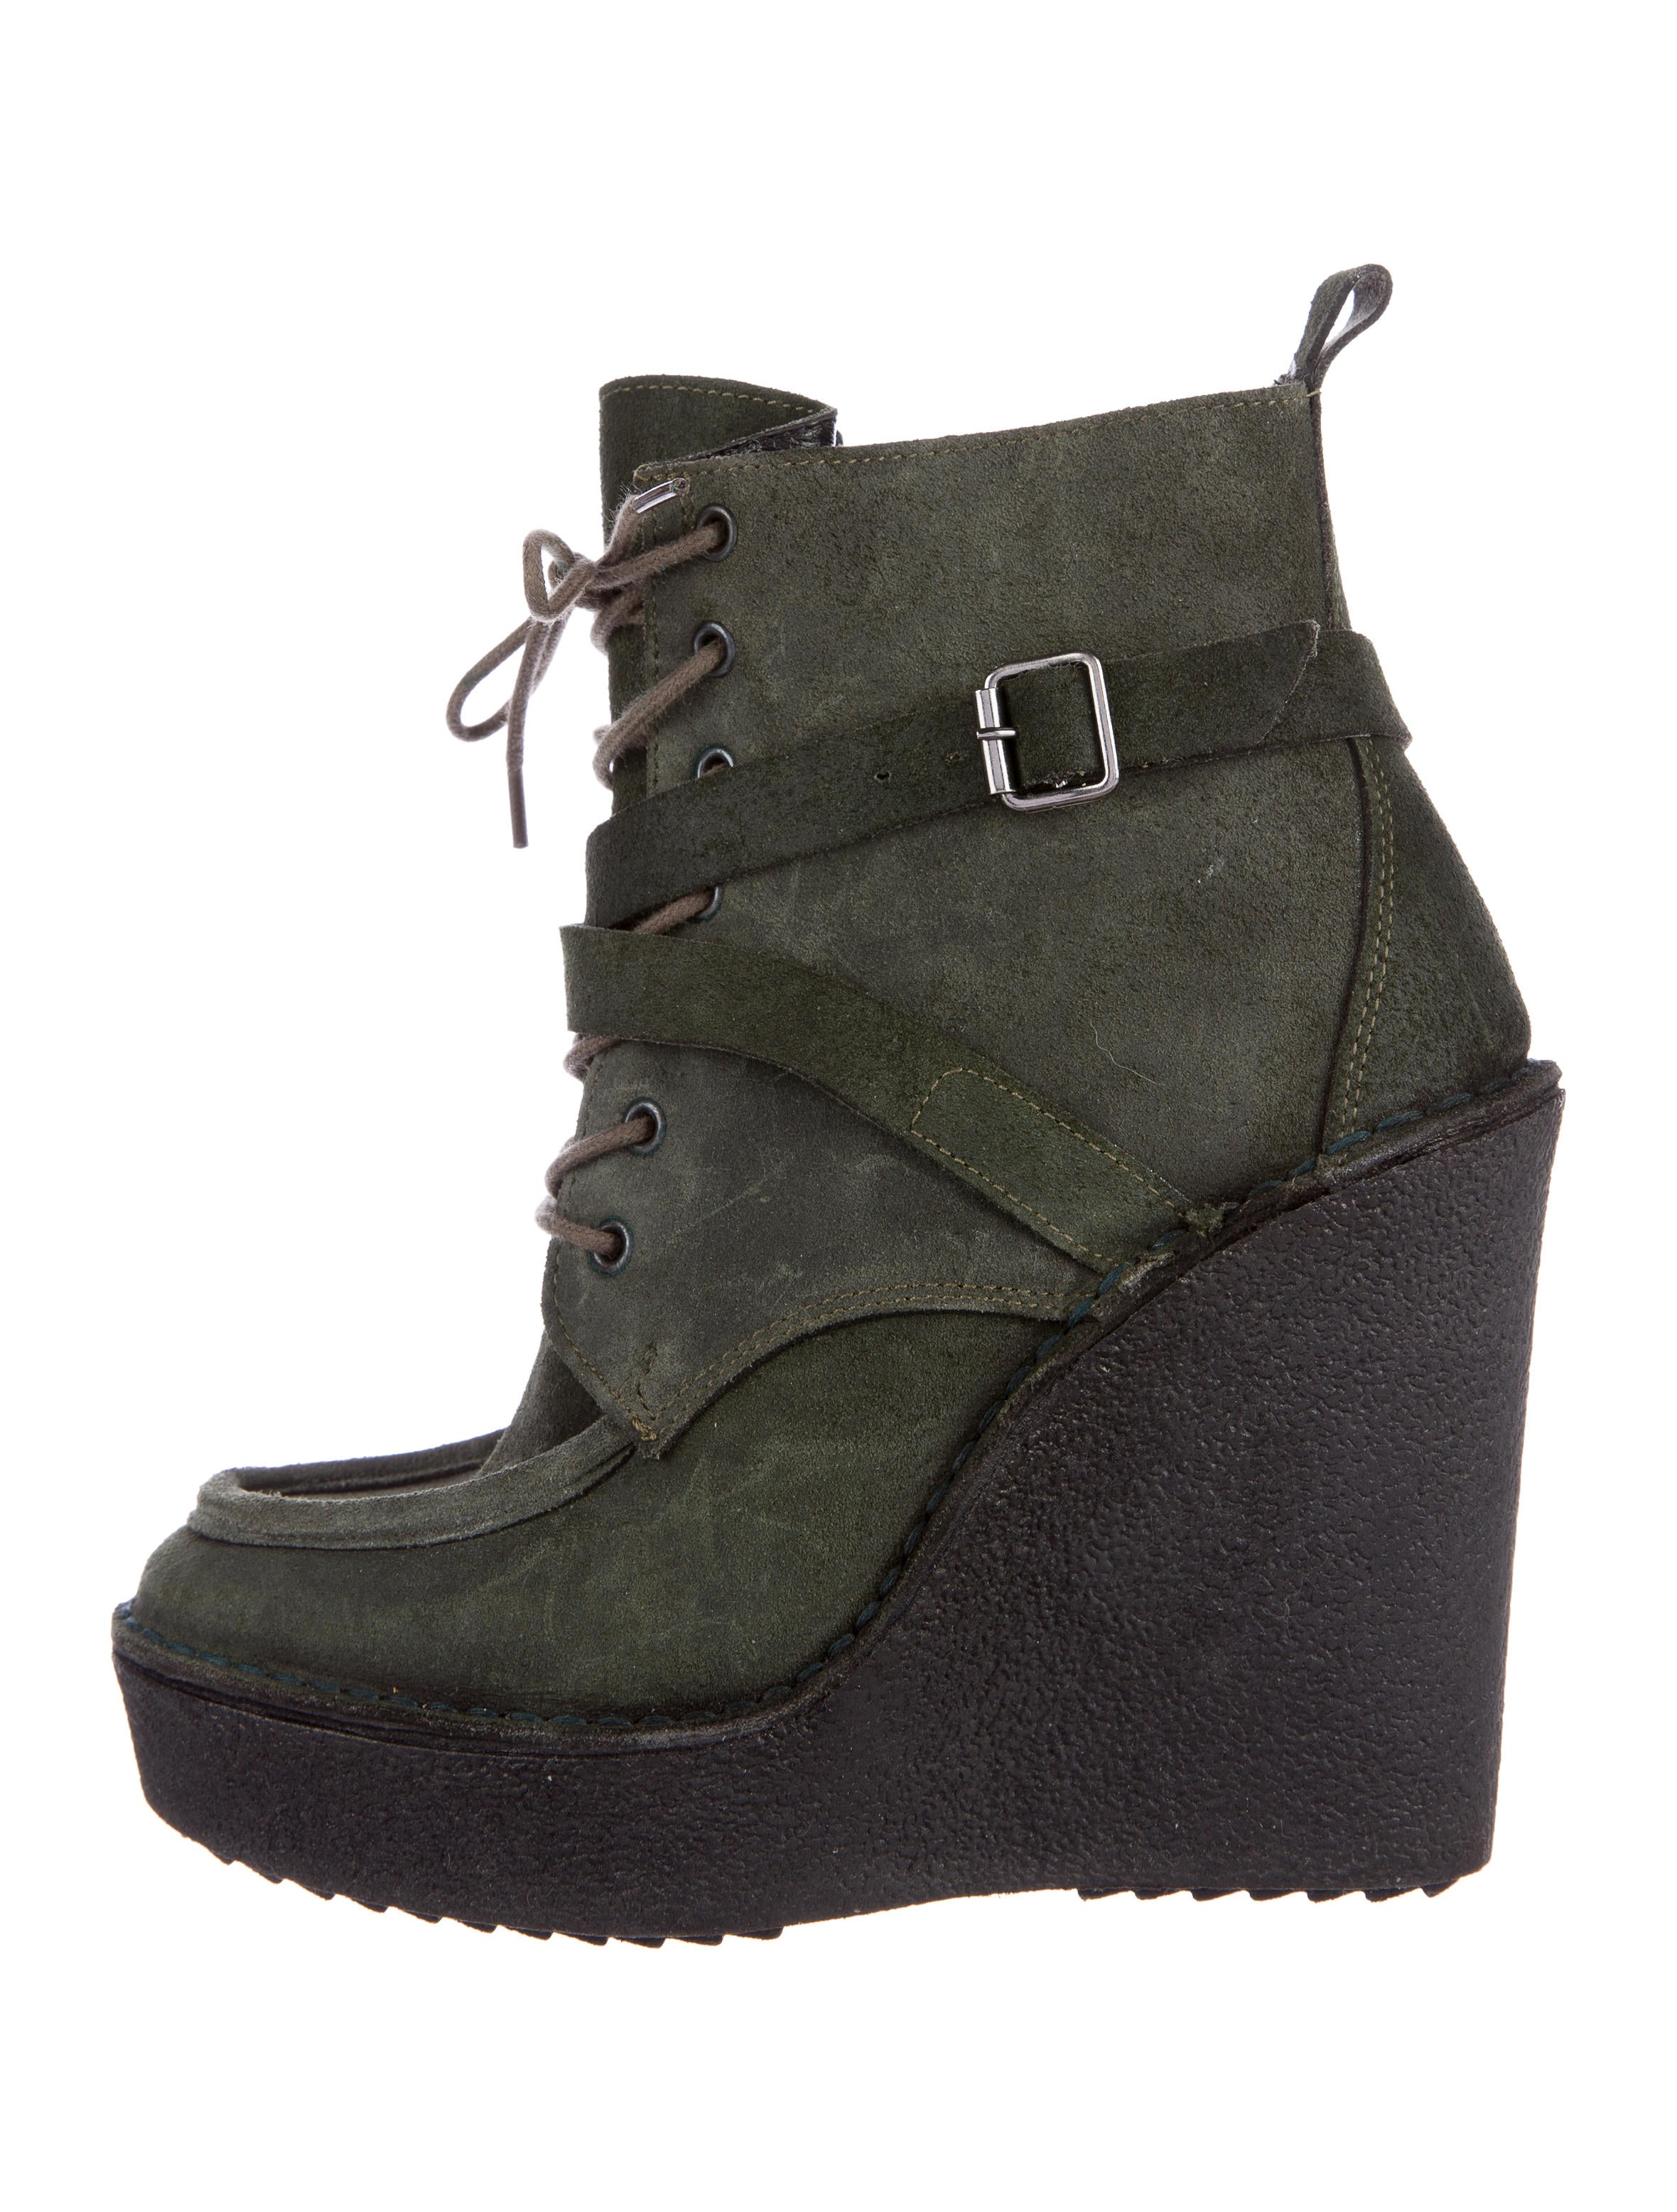 Pierre Hardy Suede Wedge Ankle Boots - Shoes